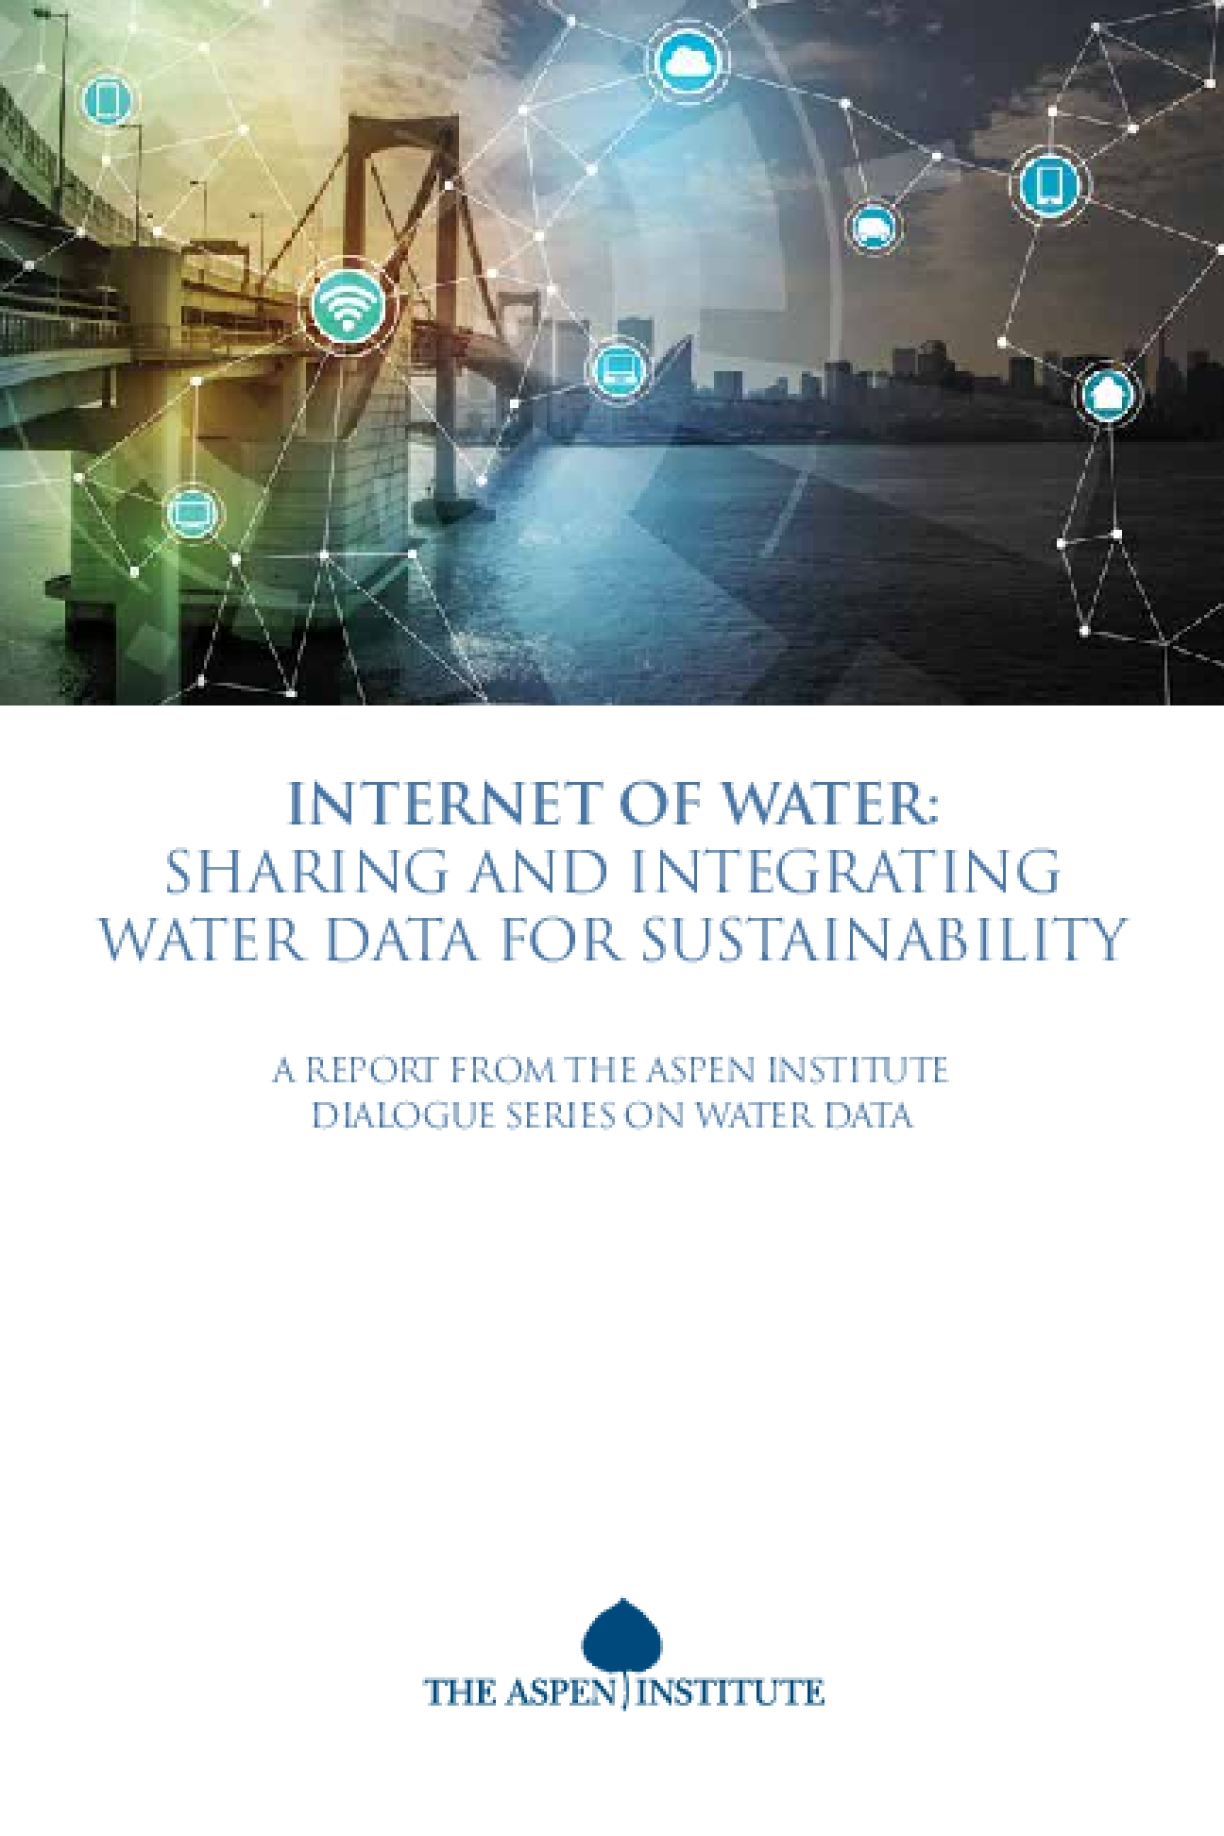 INTERNET OF WATER: Sharing and Integrating Water Data for Sustainability. A Report from the Aspen Institute Dialogue Series on Water Data